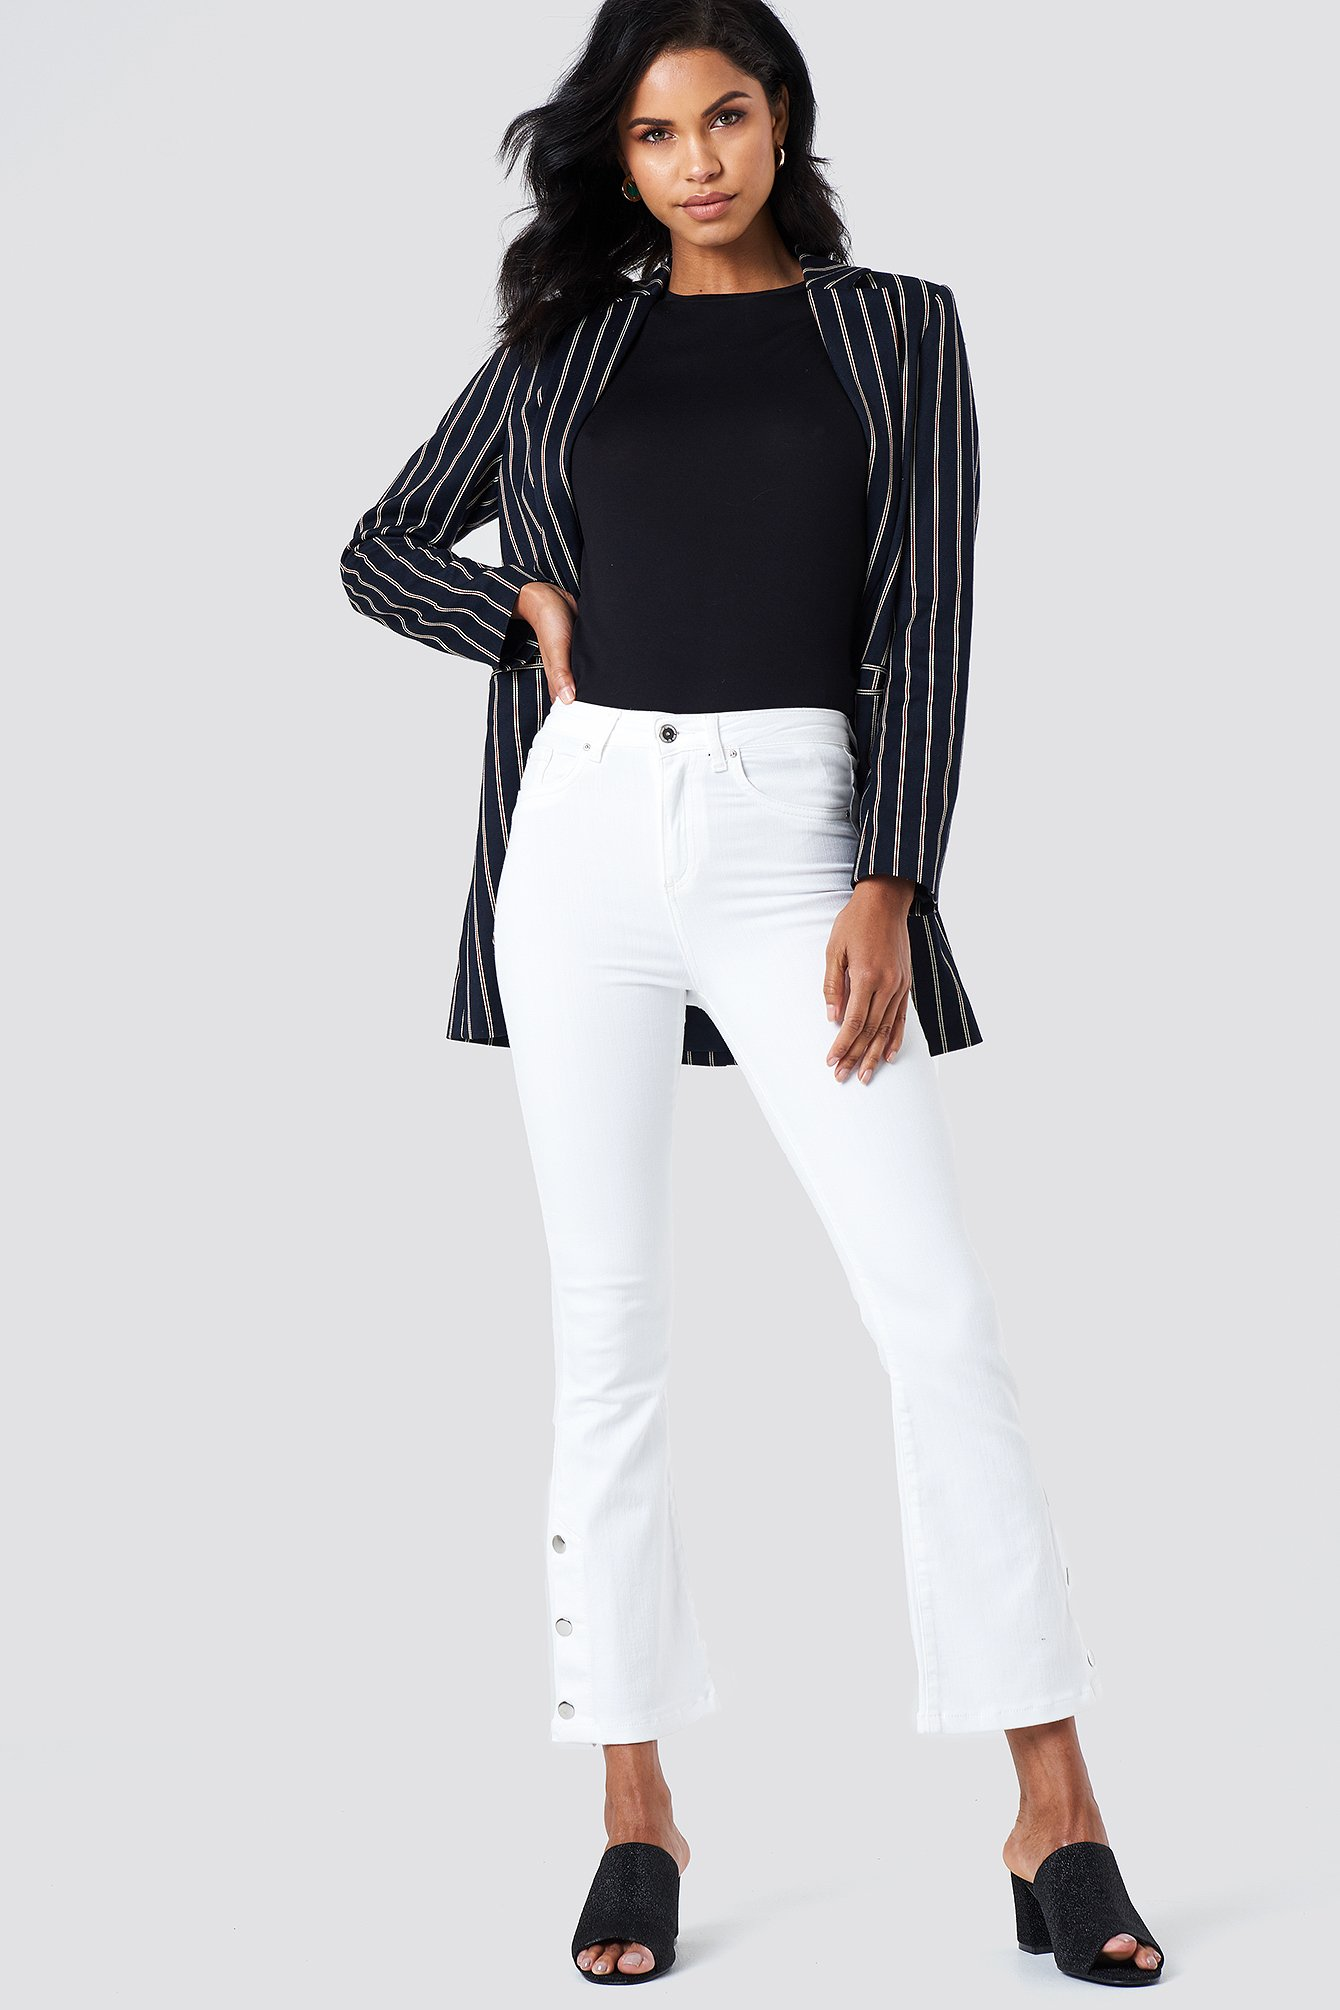 BUTTON DETAILED CROPPED JEANS - WHITE